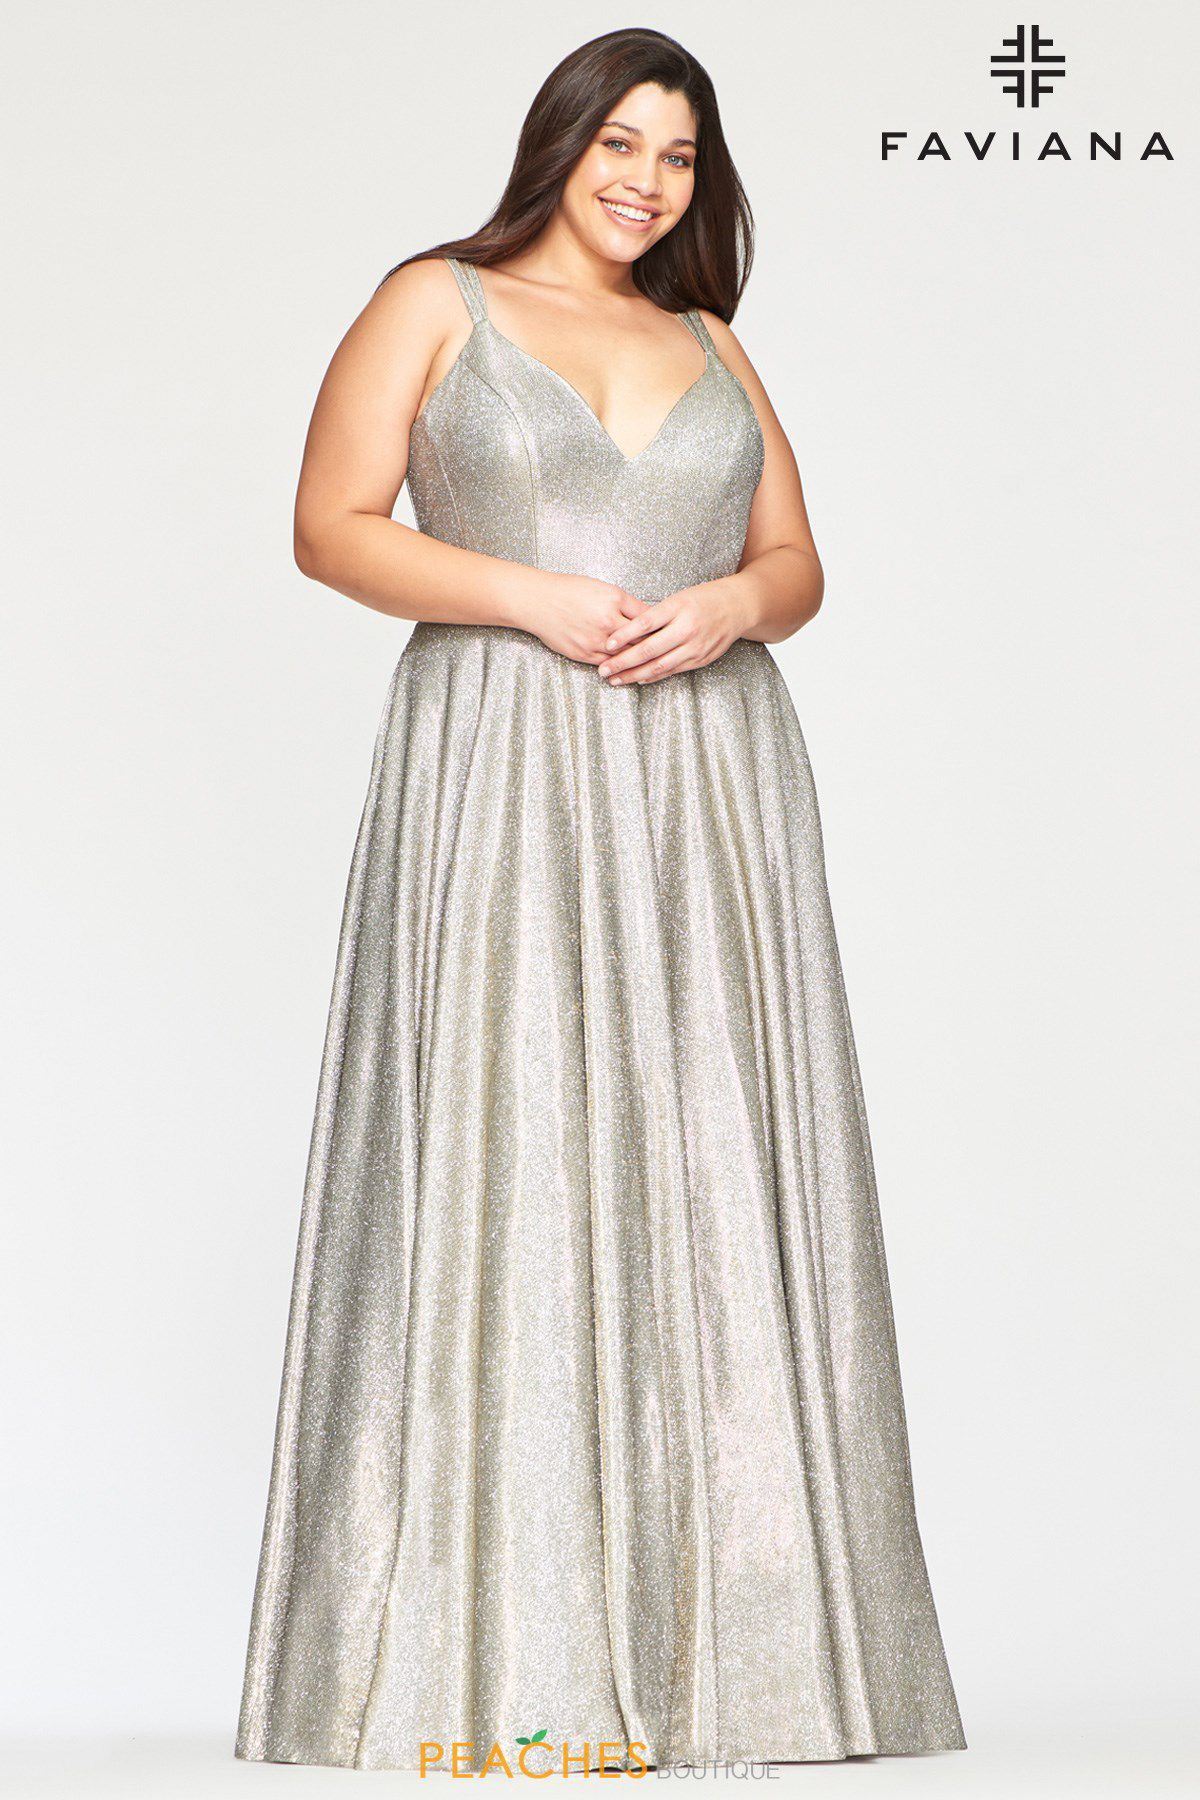 Style 9493 Faviana Silver Size 24 Prom Pageant Halter Tall Height A-line Dress on Queenly